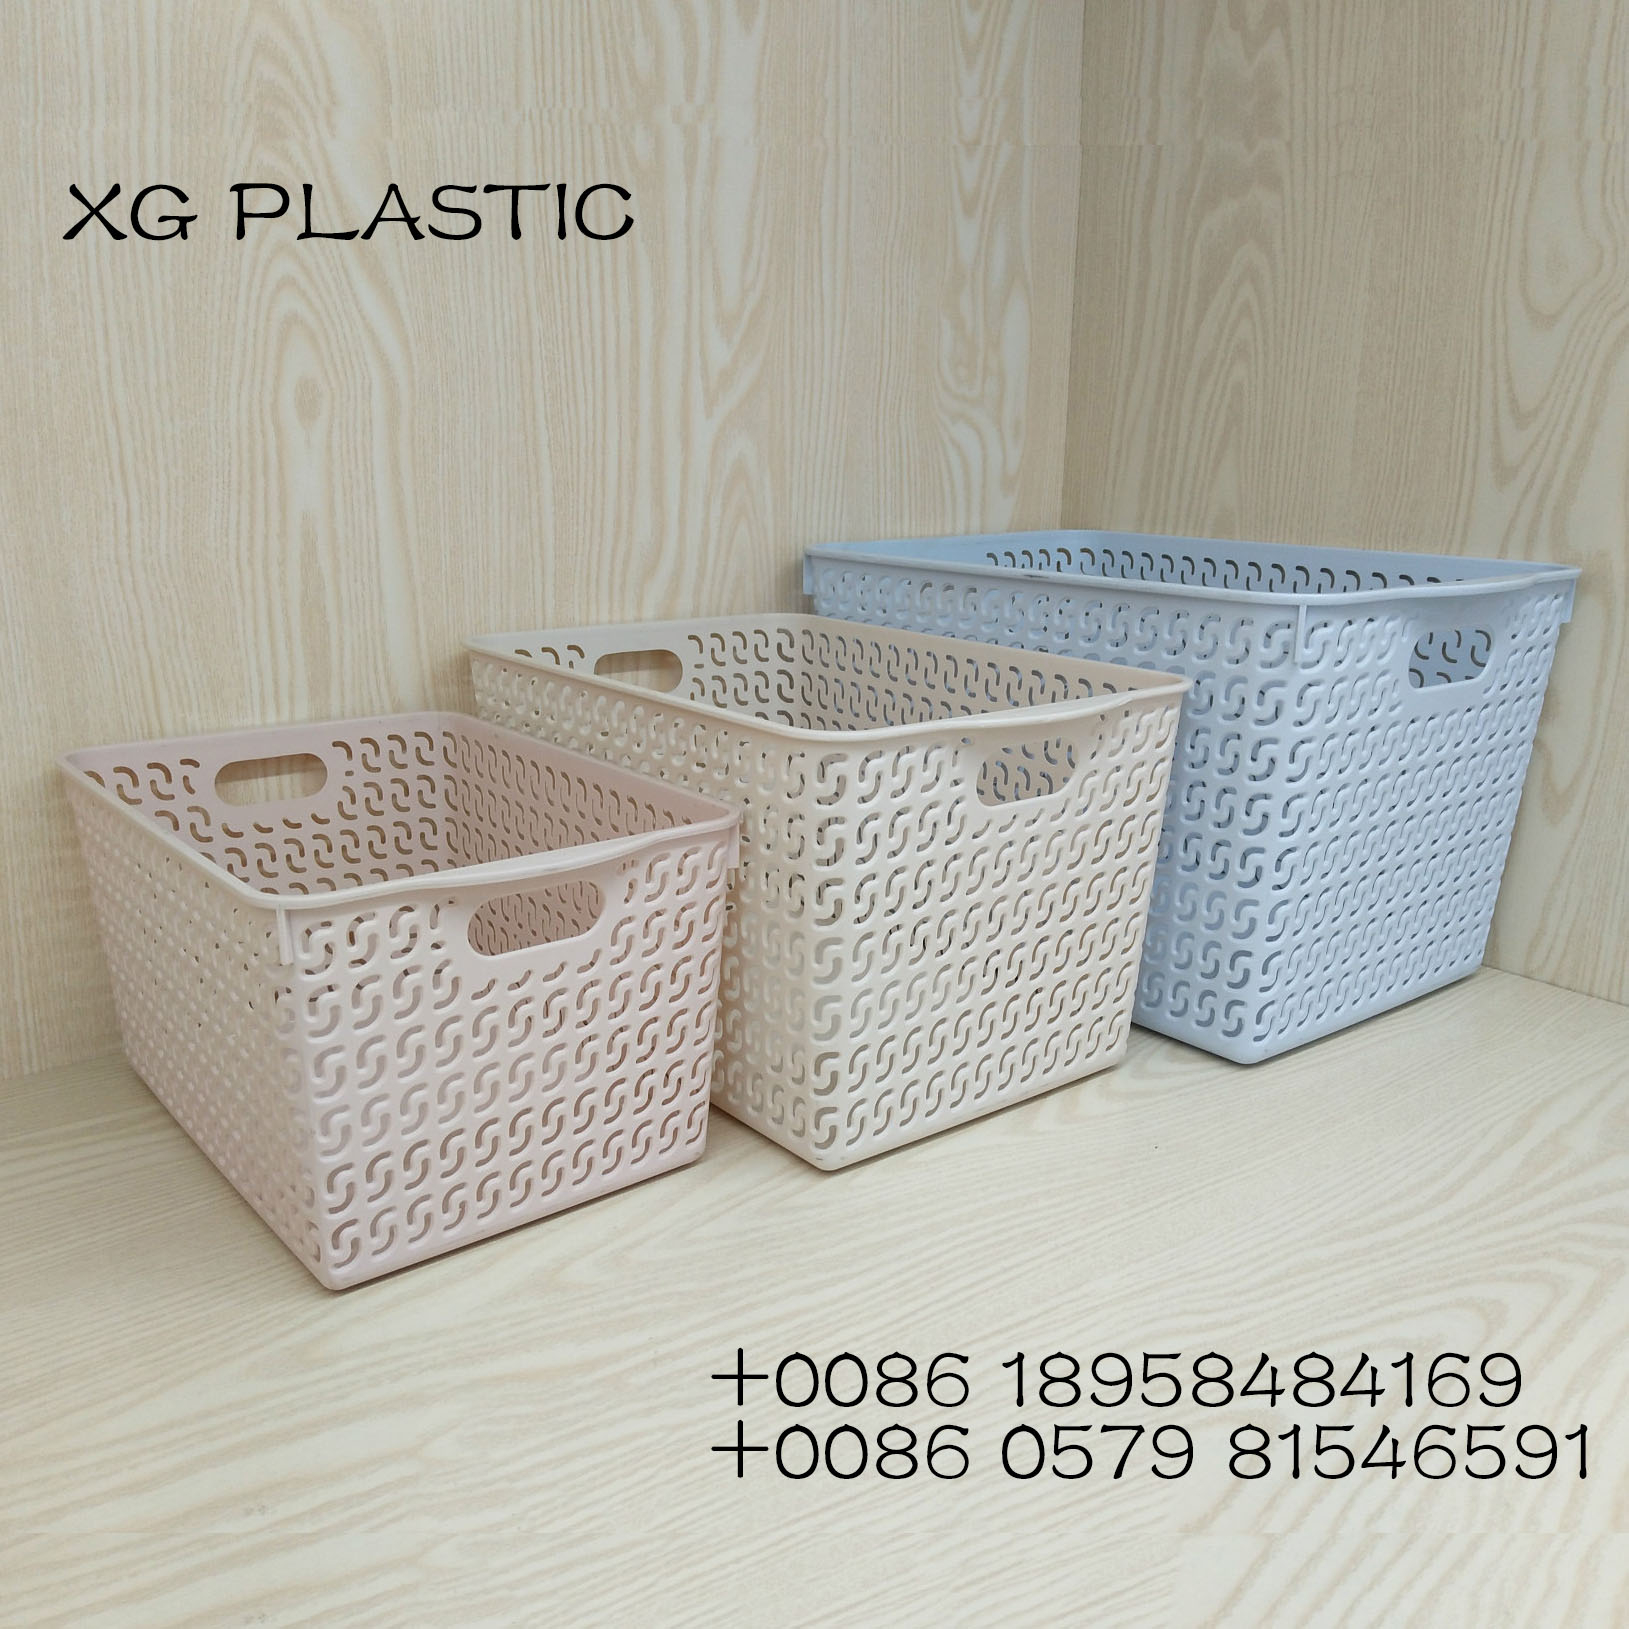 Supply Plastic Storage Baskets Bins Organizer With Handles within dimensions 1629 X 1629